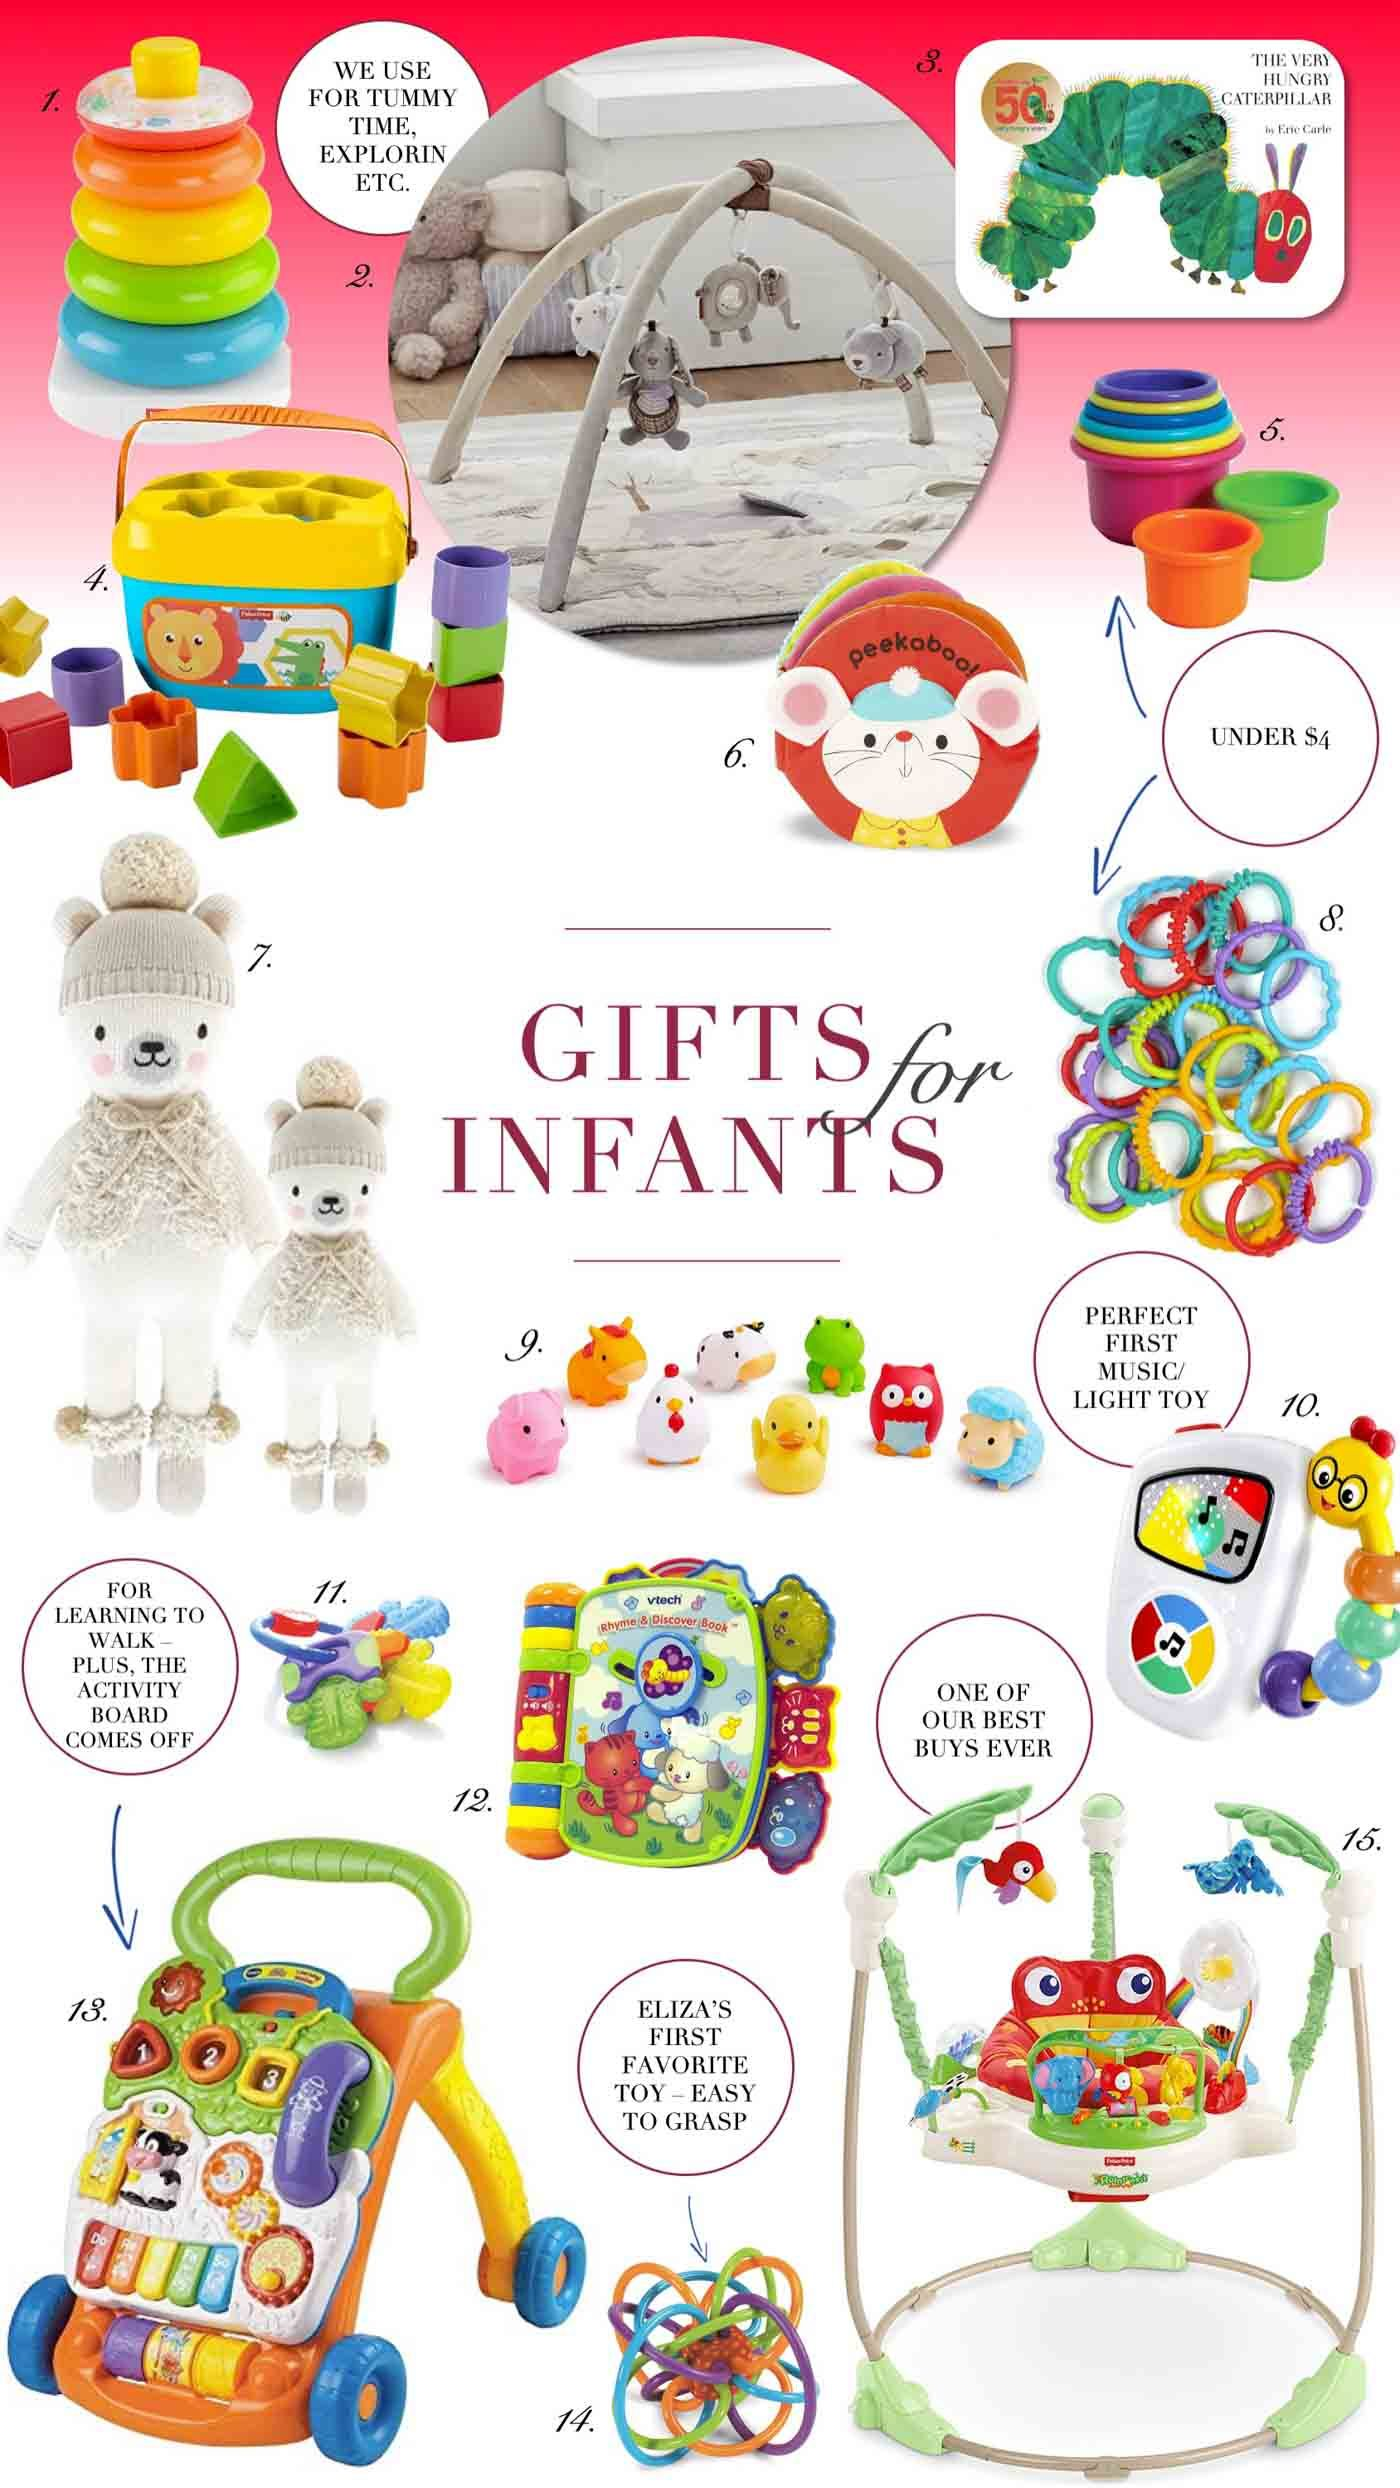 Best Christmas Gifts For Infants 2020 Christmas GIft Ideas for Babies (& Infants) | Kelley Nan in 2020